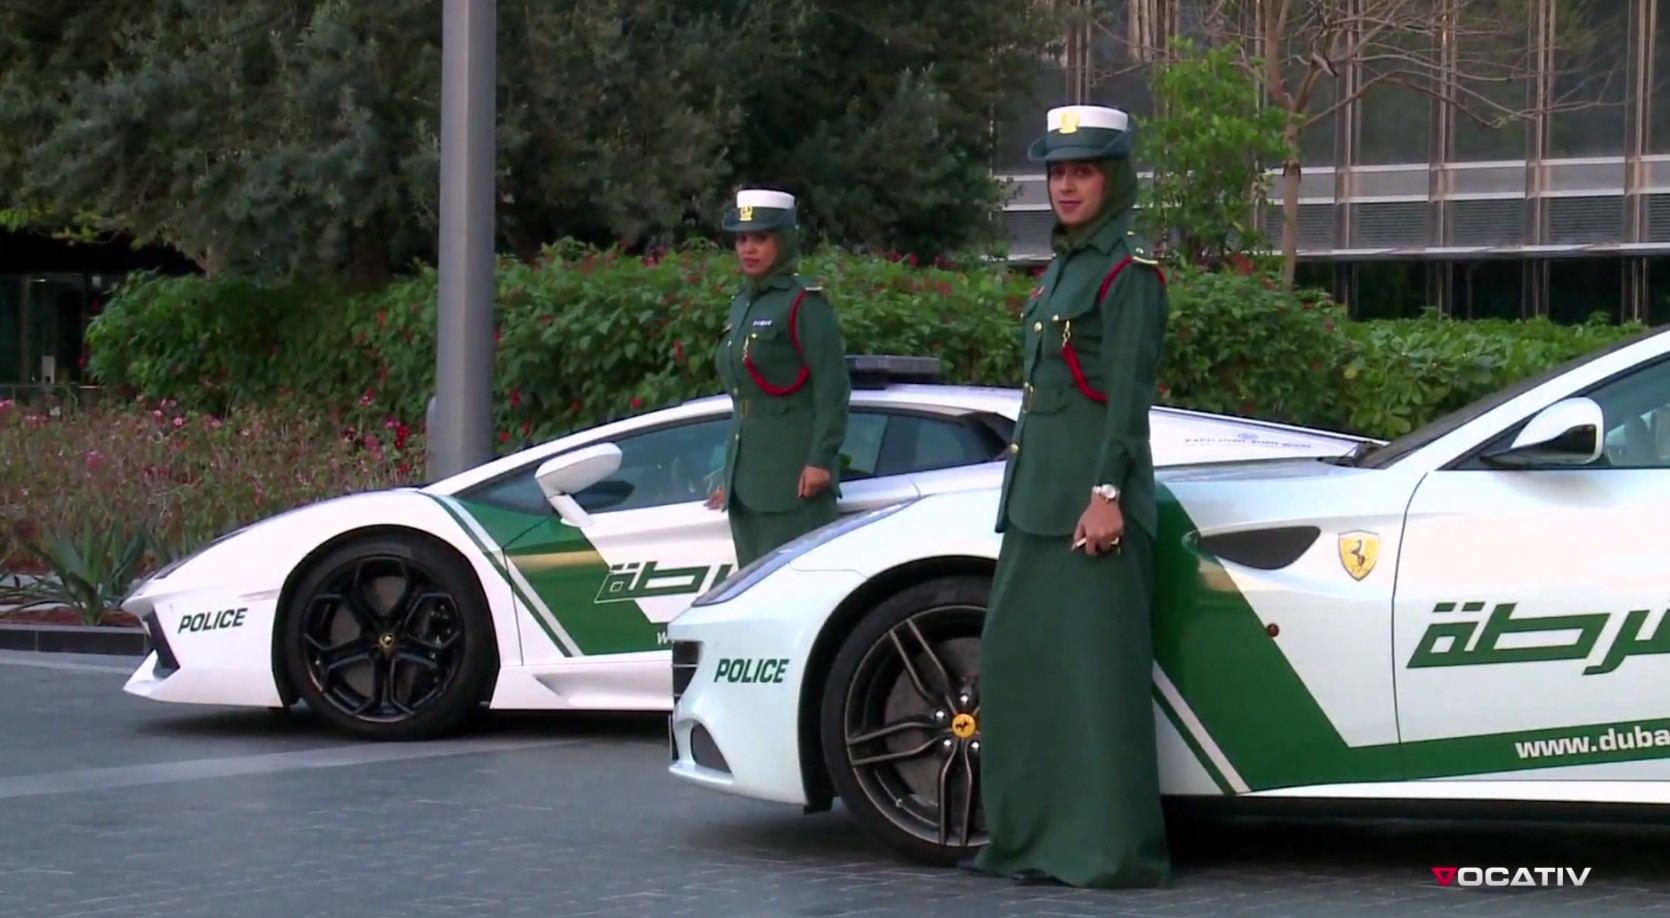 Dubai Police Cars Are The World S Fastest Video